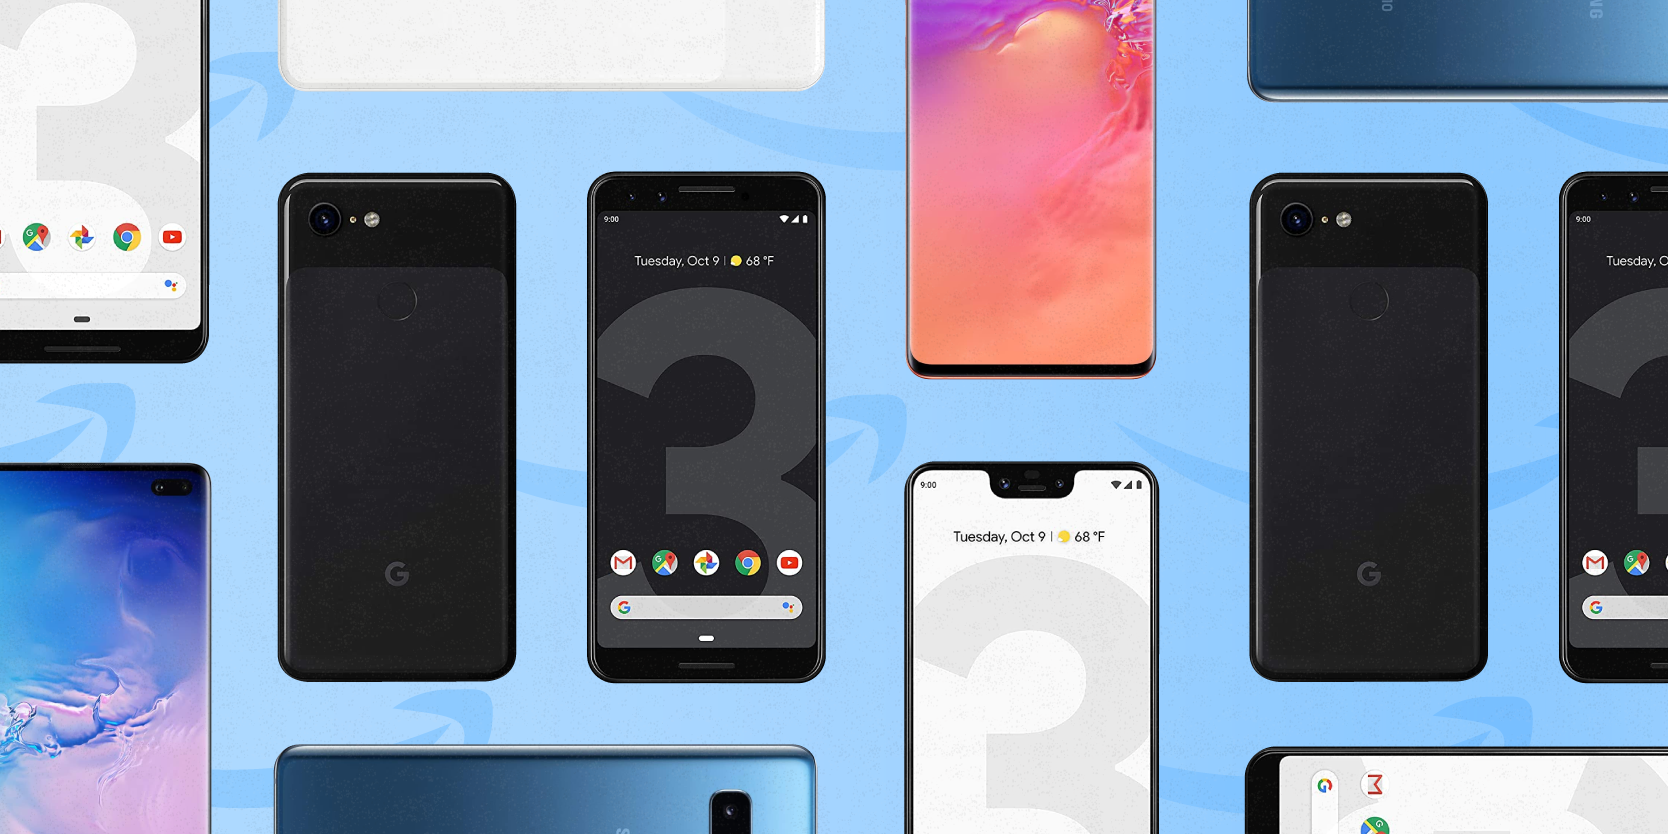 Prime Day is coming to an end, but you can still snag discounts on iPhone, Samsung Galaxy, and Google Pixel